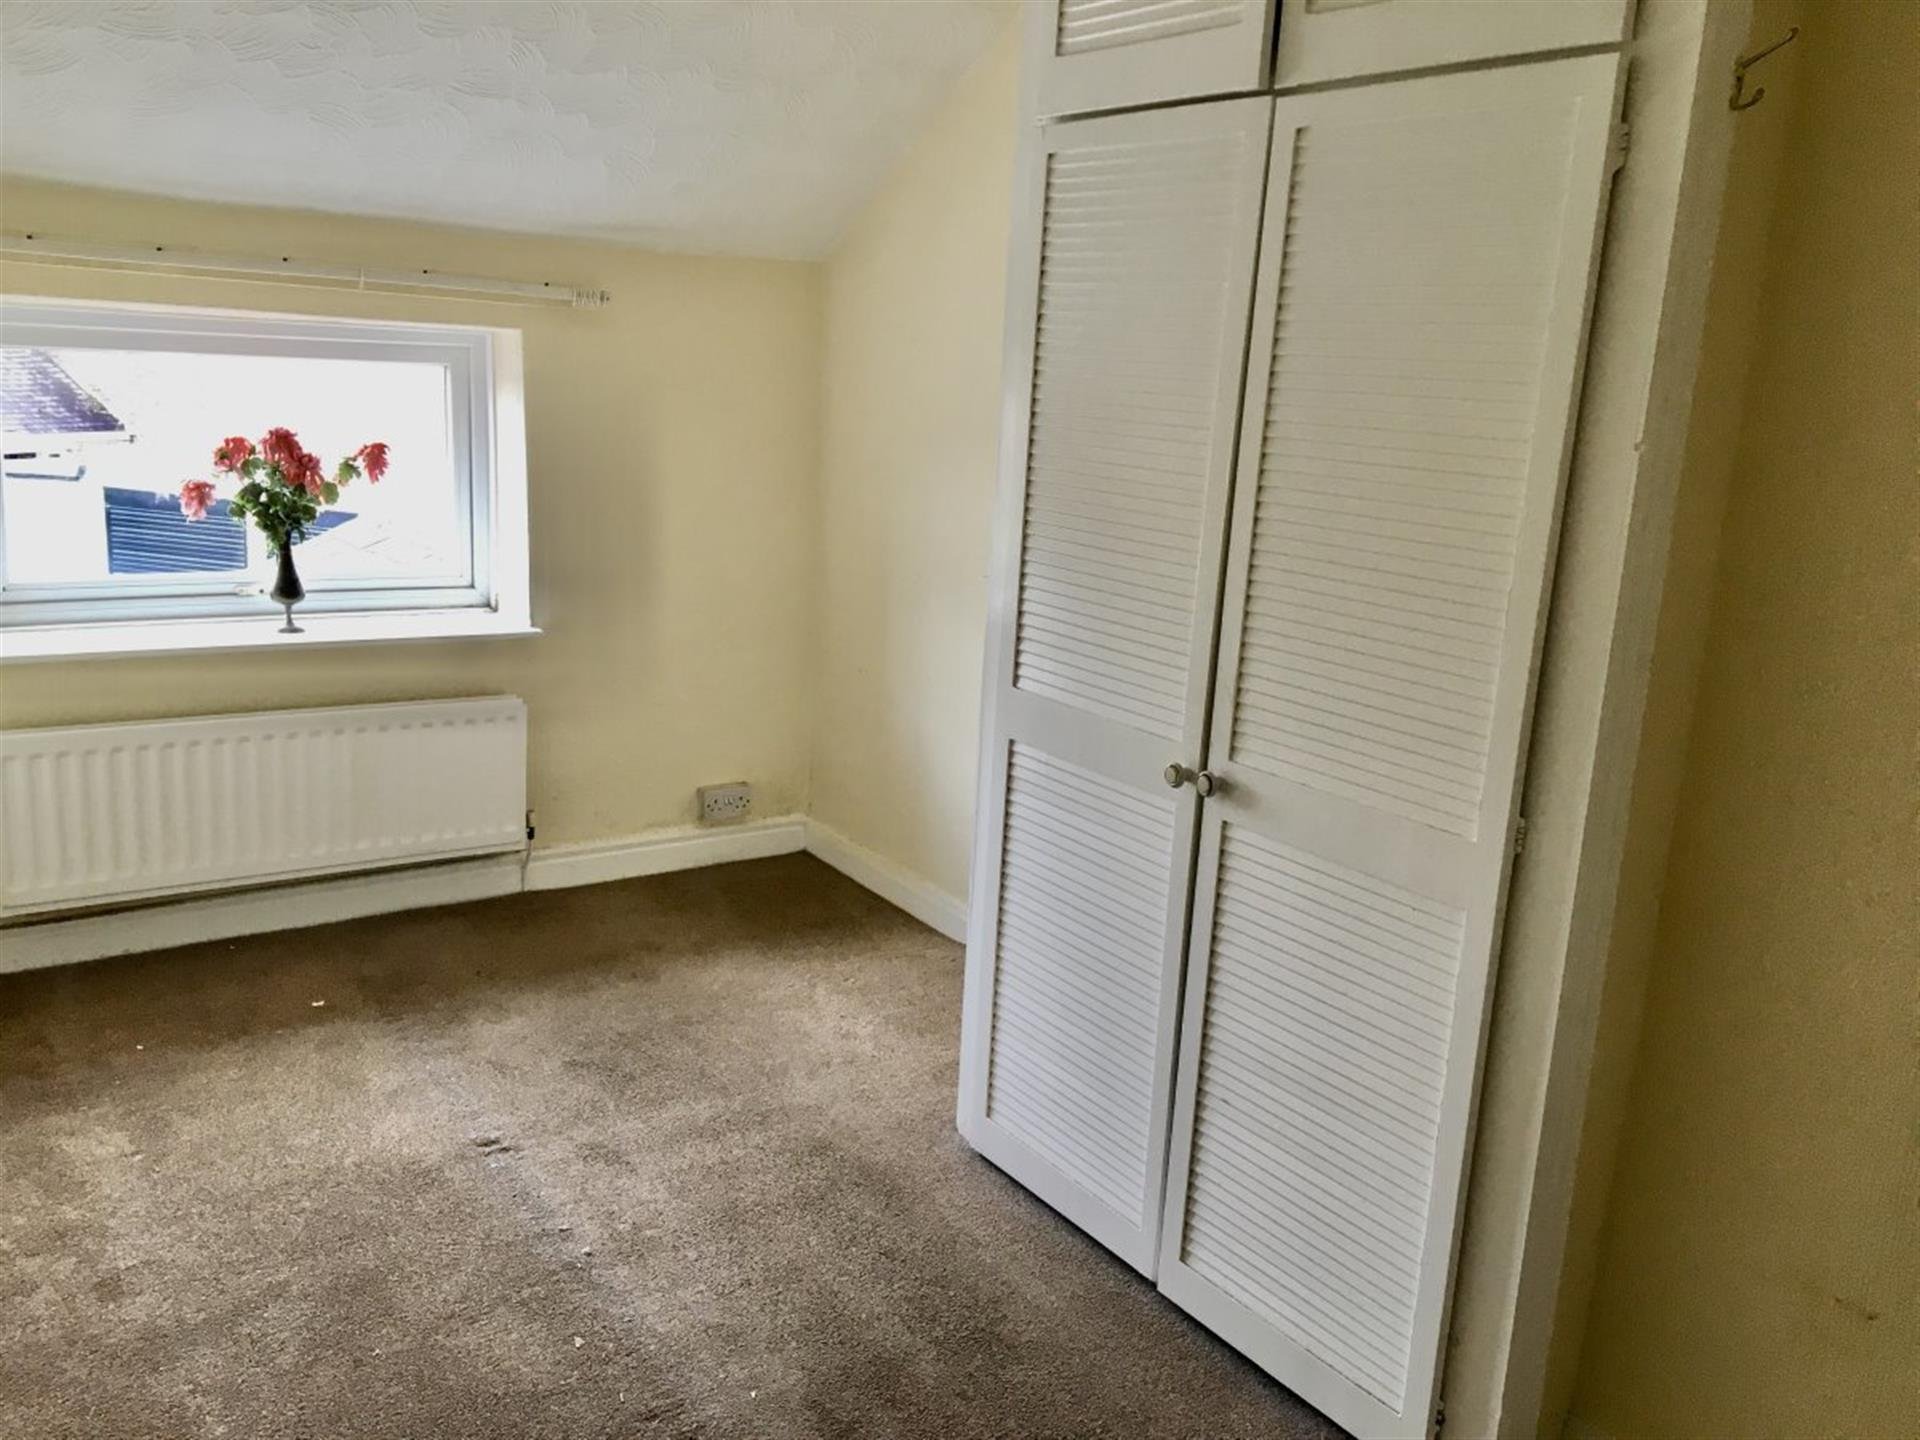 2 bedroom terraced house To Let in Bishop Auckland - photograph 9.